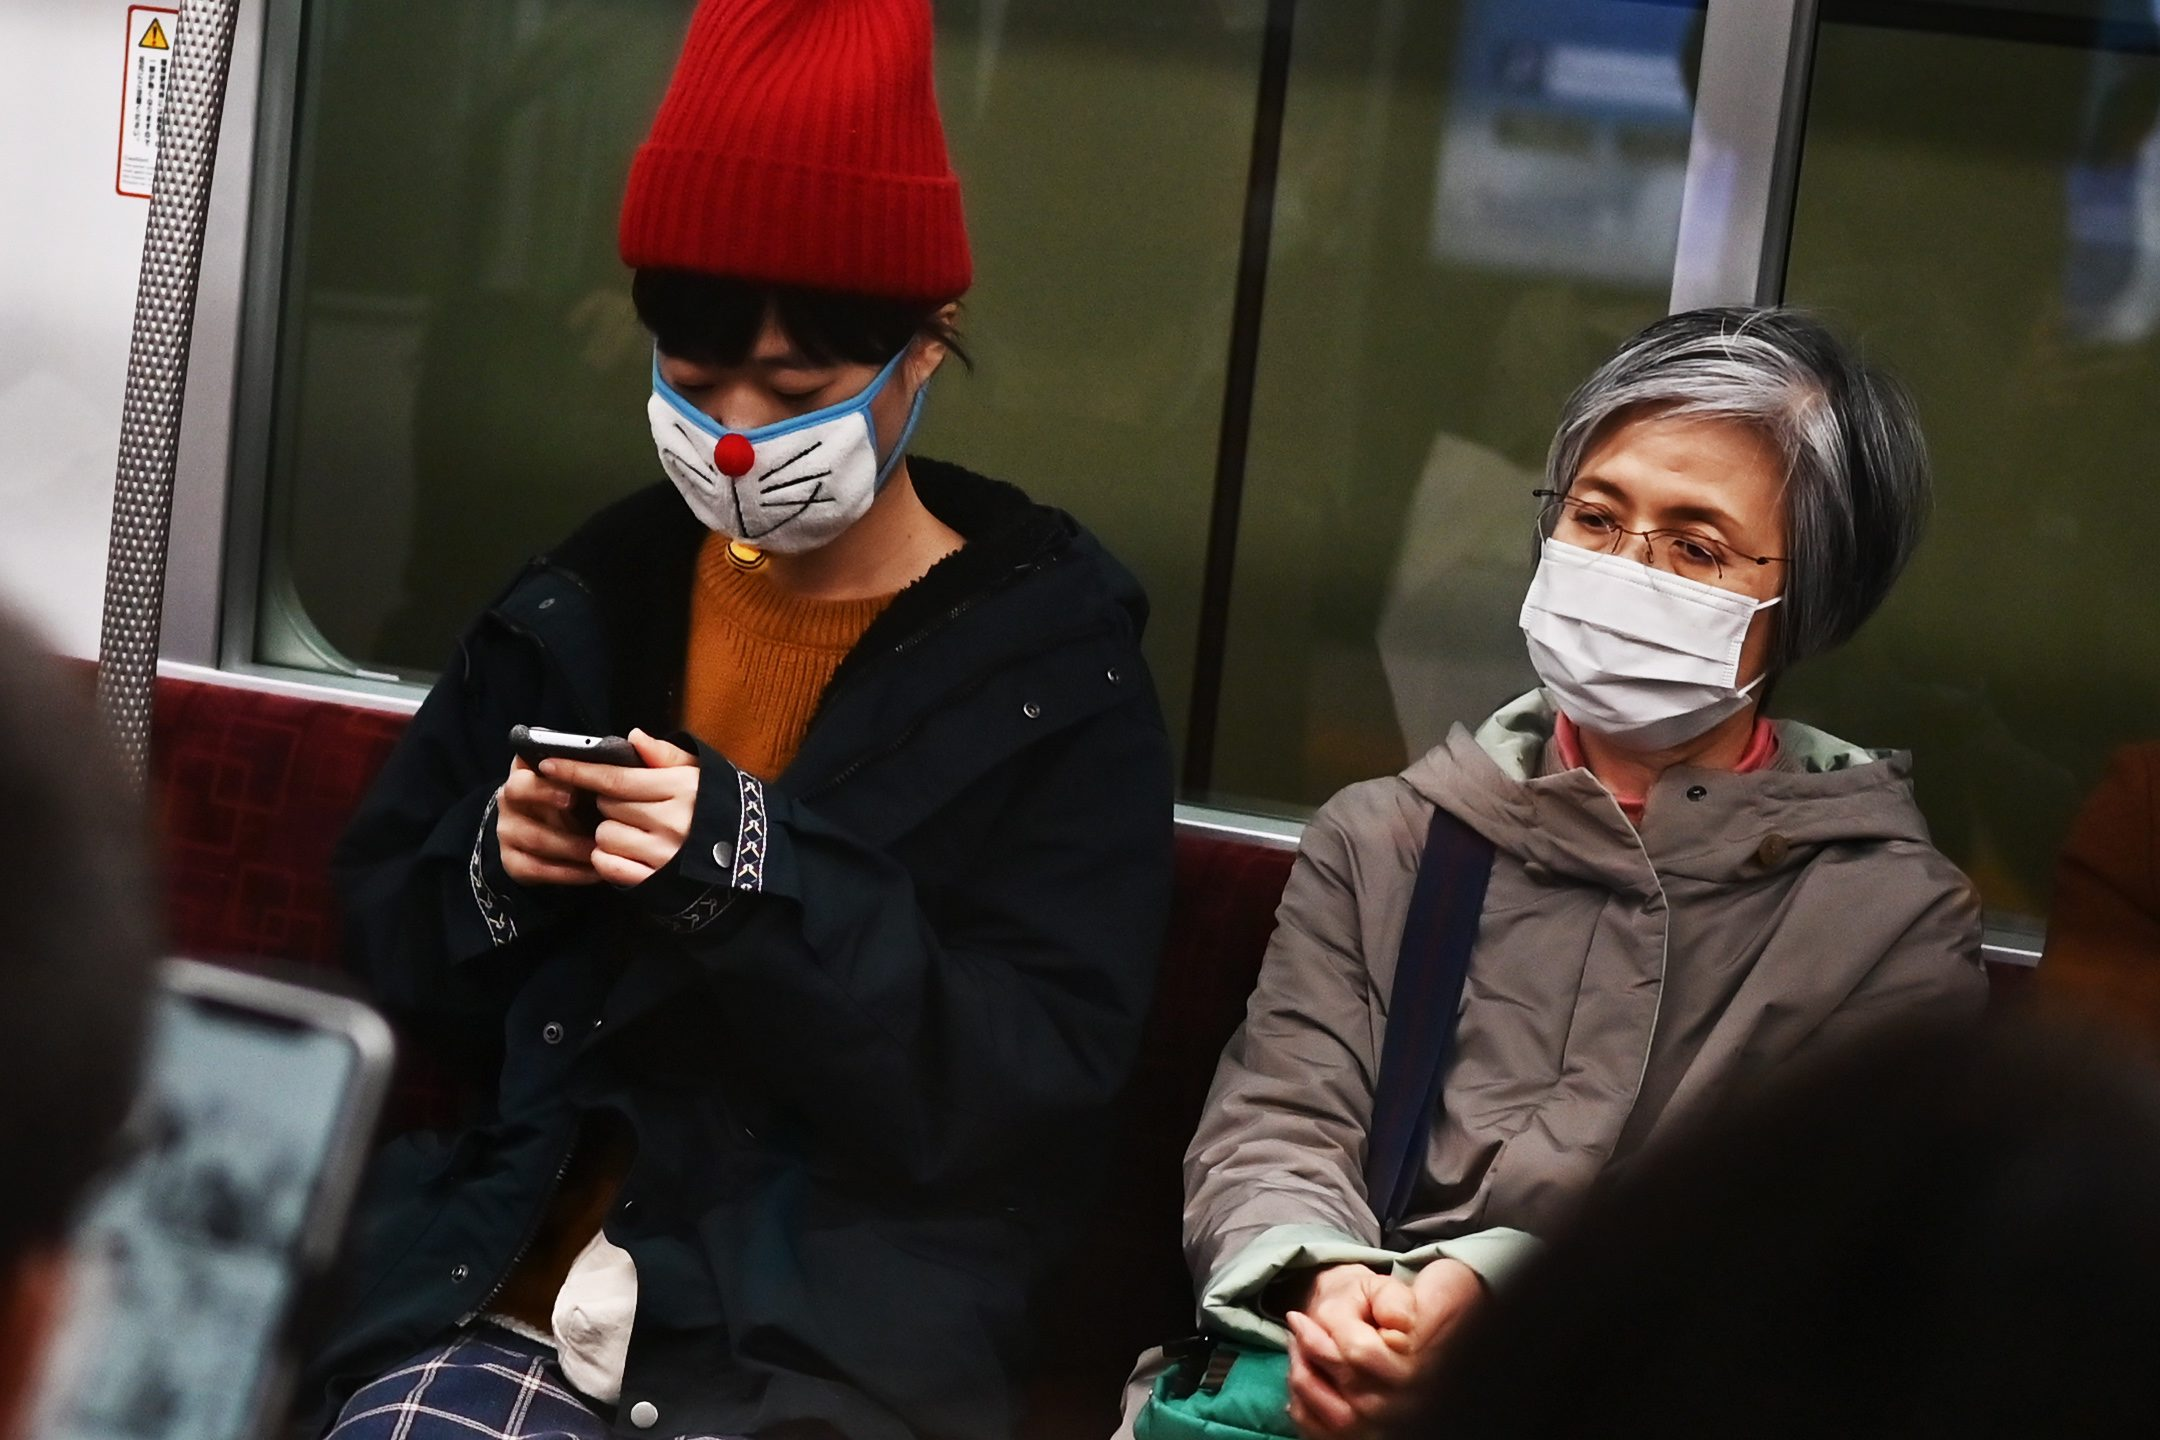 People wearing face masks travel on a train in Tokyo on February 25, 2020. - Japan has more than 150 cases of the COVID-19 coronavirus and five have died. Four of those deaths were passengers who had been on the cruise ship Diamond Princess, quarantined off in Yokohama, where the number of infections is over 690. (Photo by CHARLY TRIBALLEAU / AFP)